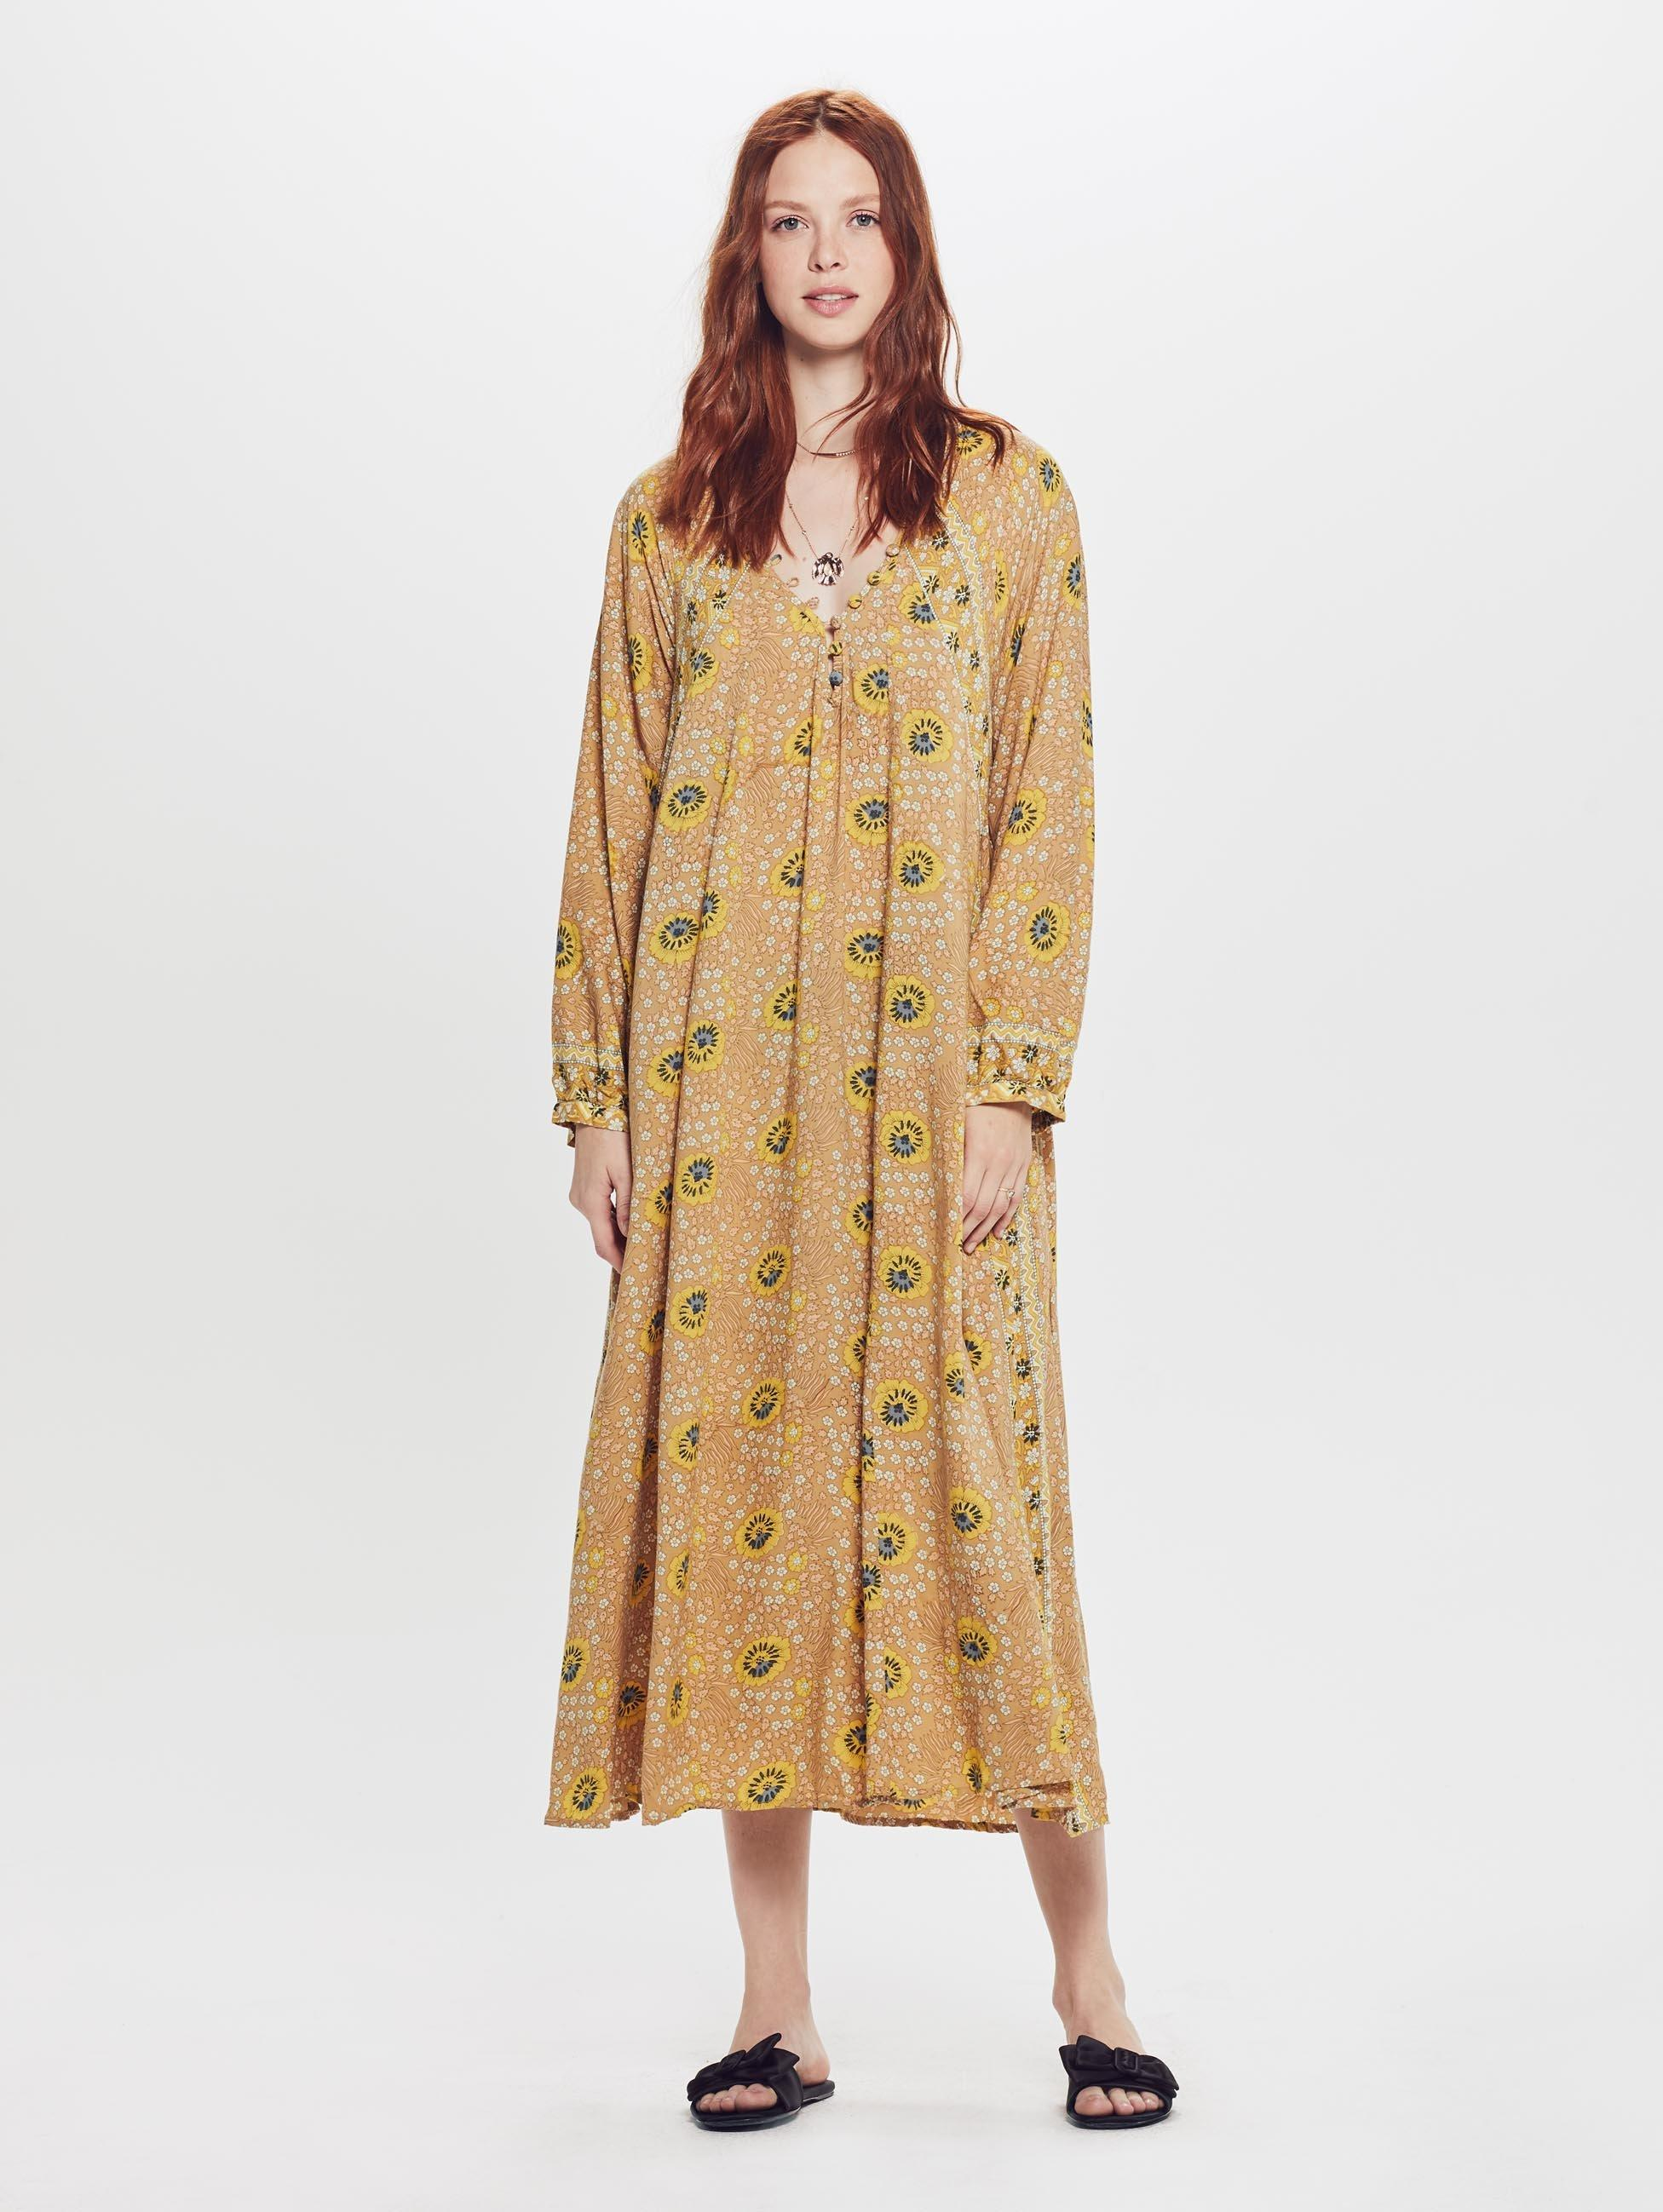 5e2a0c6c407 Natalie Martin Fiore Maxi Rayon Dress Vintage Flowers Gold in ...